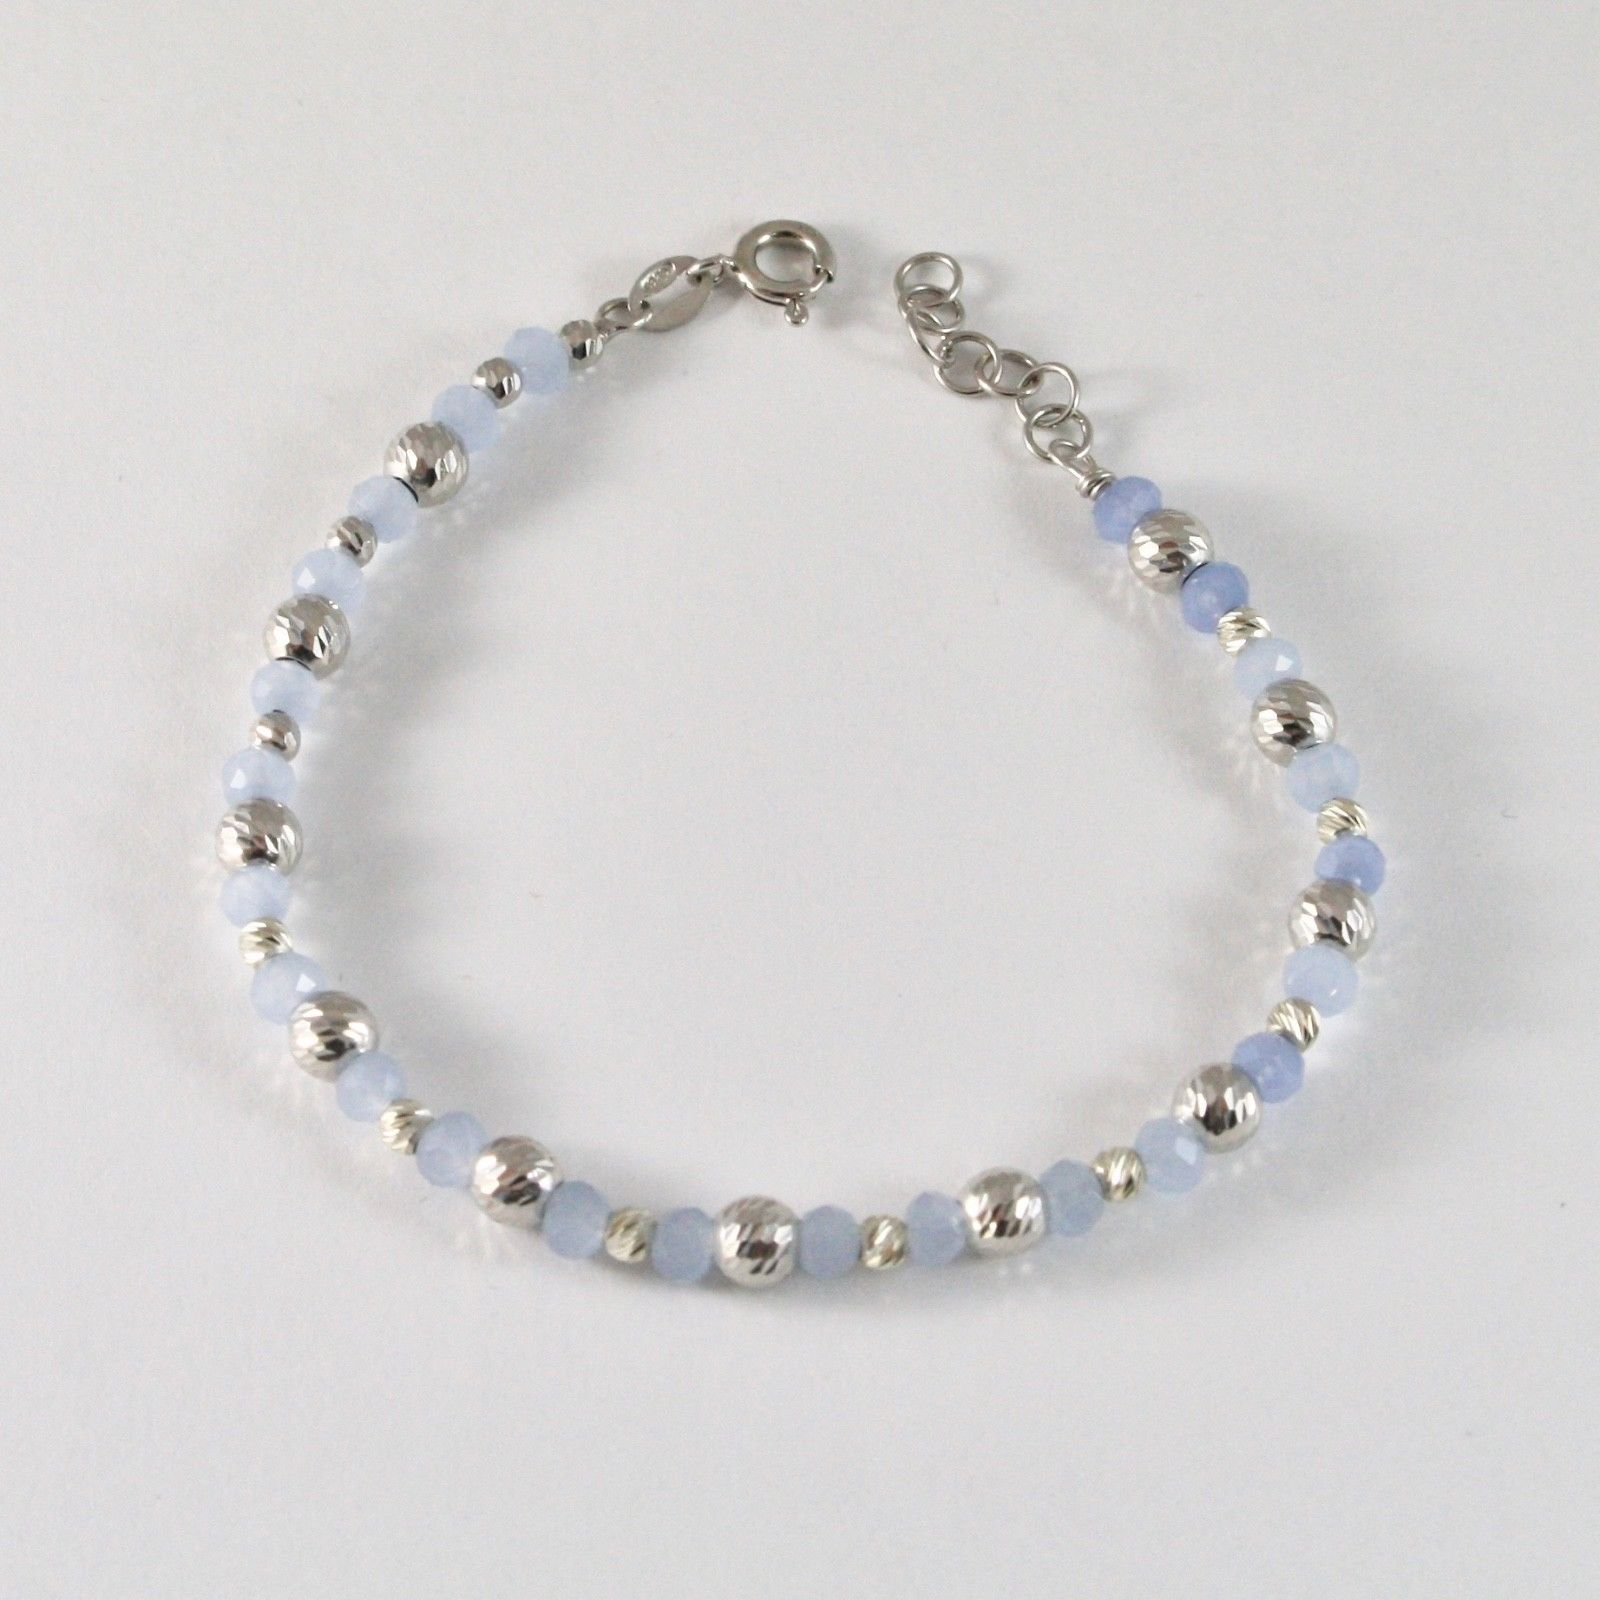 SILVER 925 BRACELET RHODIUM WITH BEADS OF SILVER FACETED AND AGATE BLUE